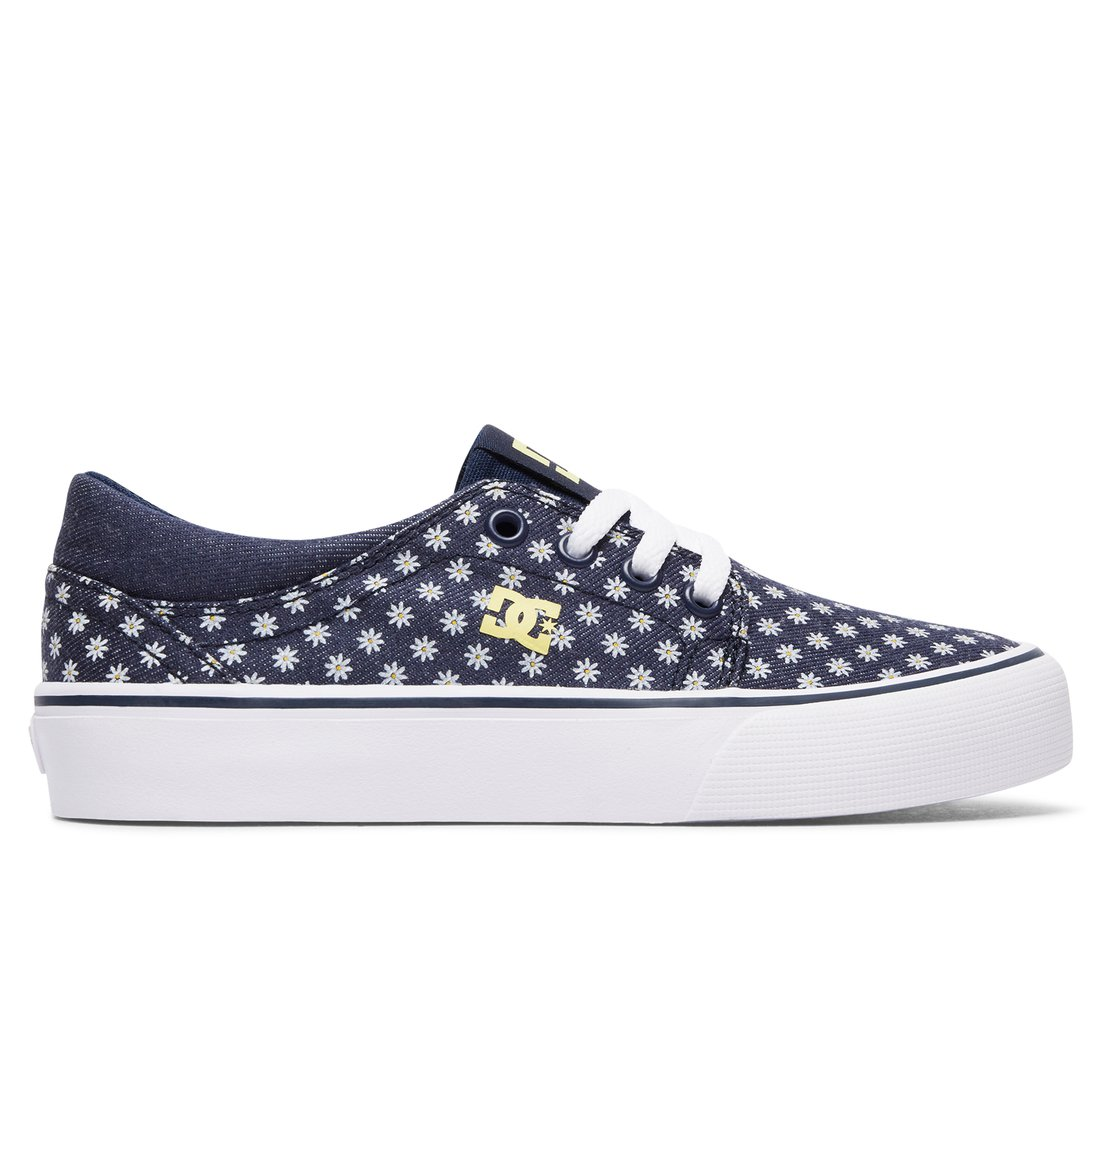 DC Shoes Trase Zapatillas Niños, Azul (Dark Navy), 32 EU (13 UK)